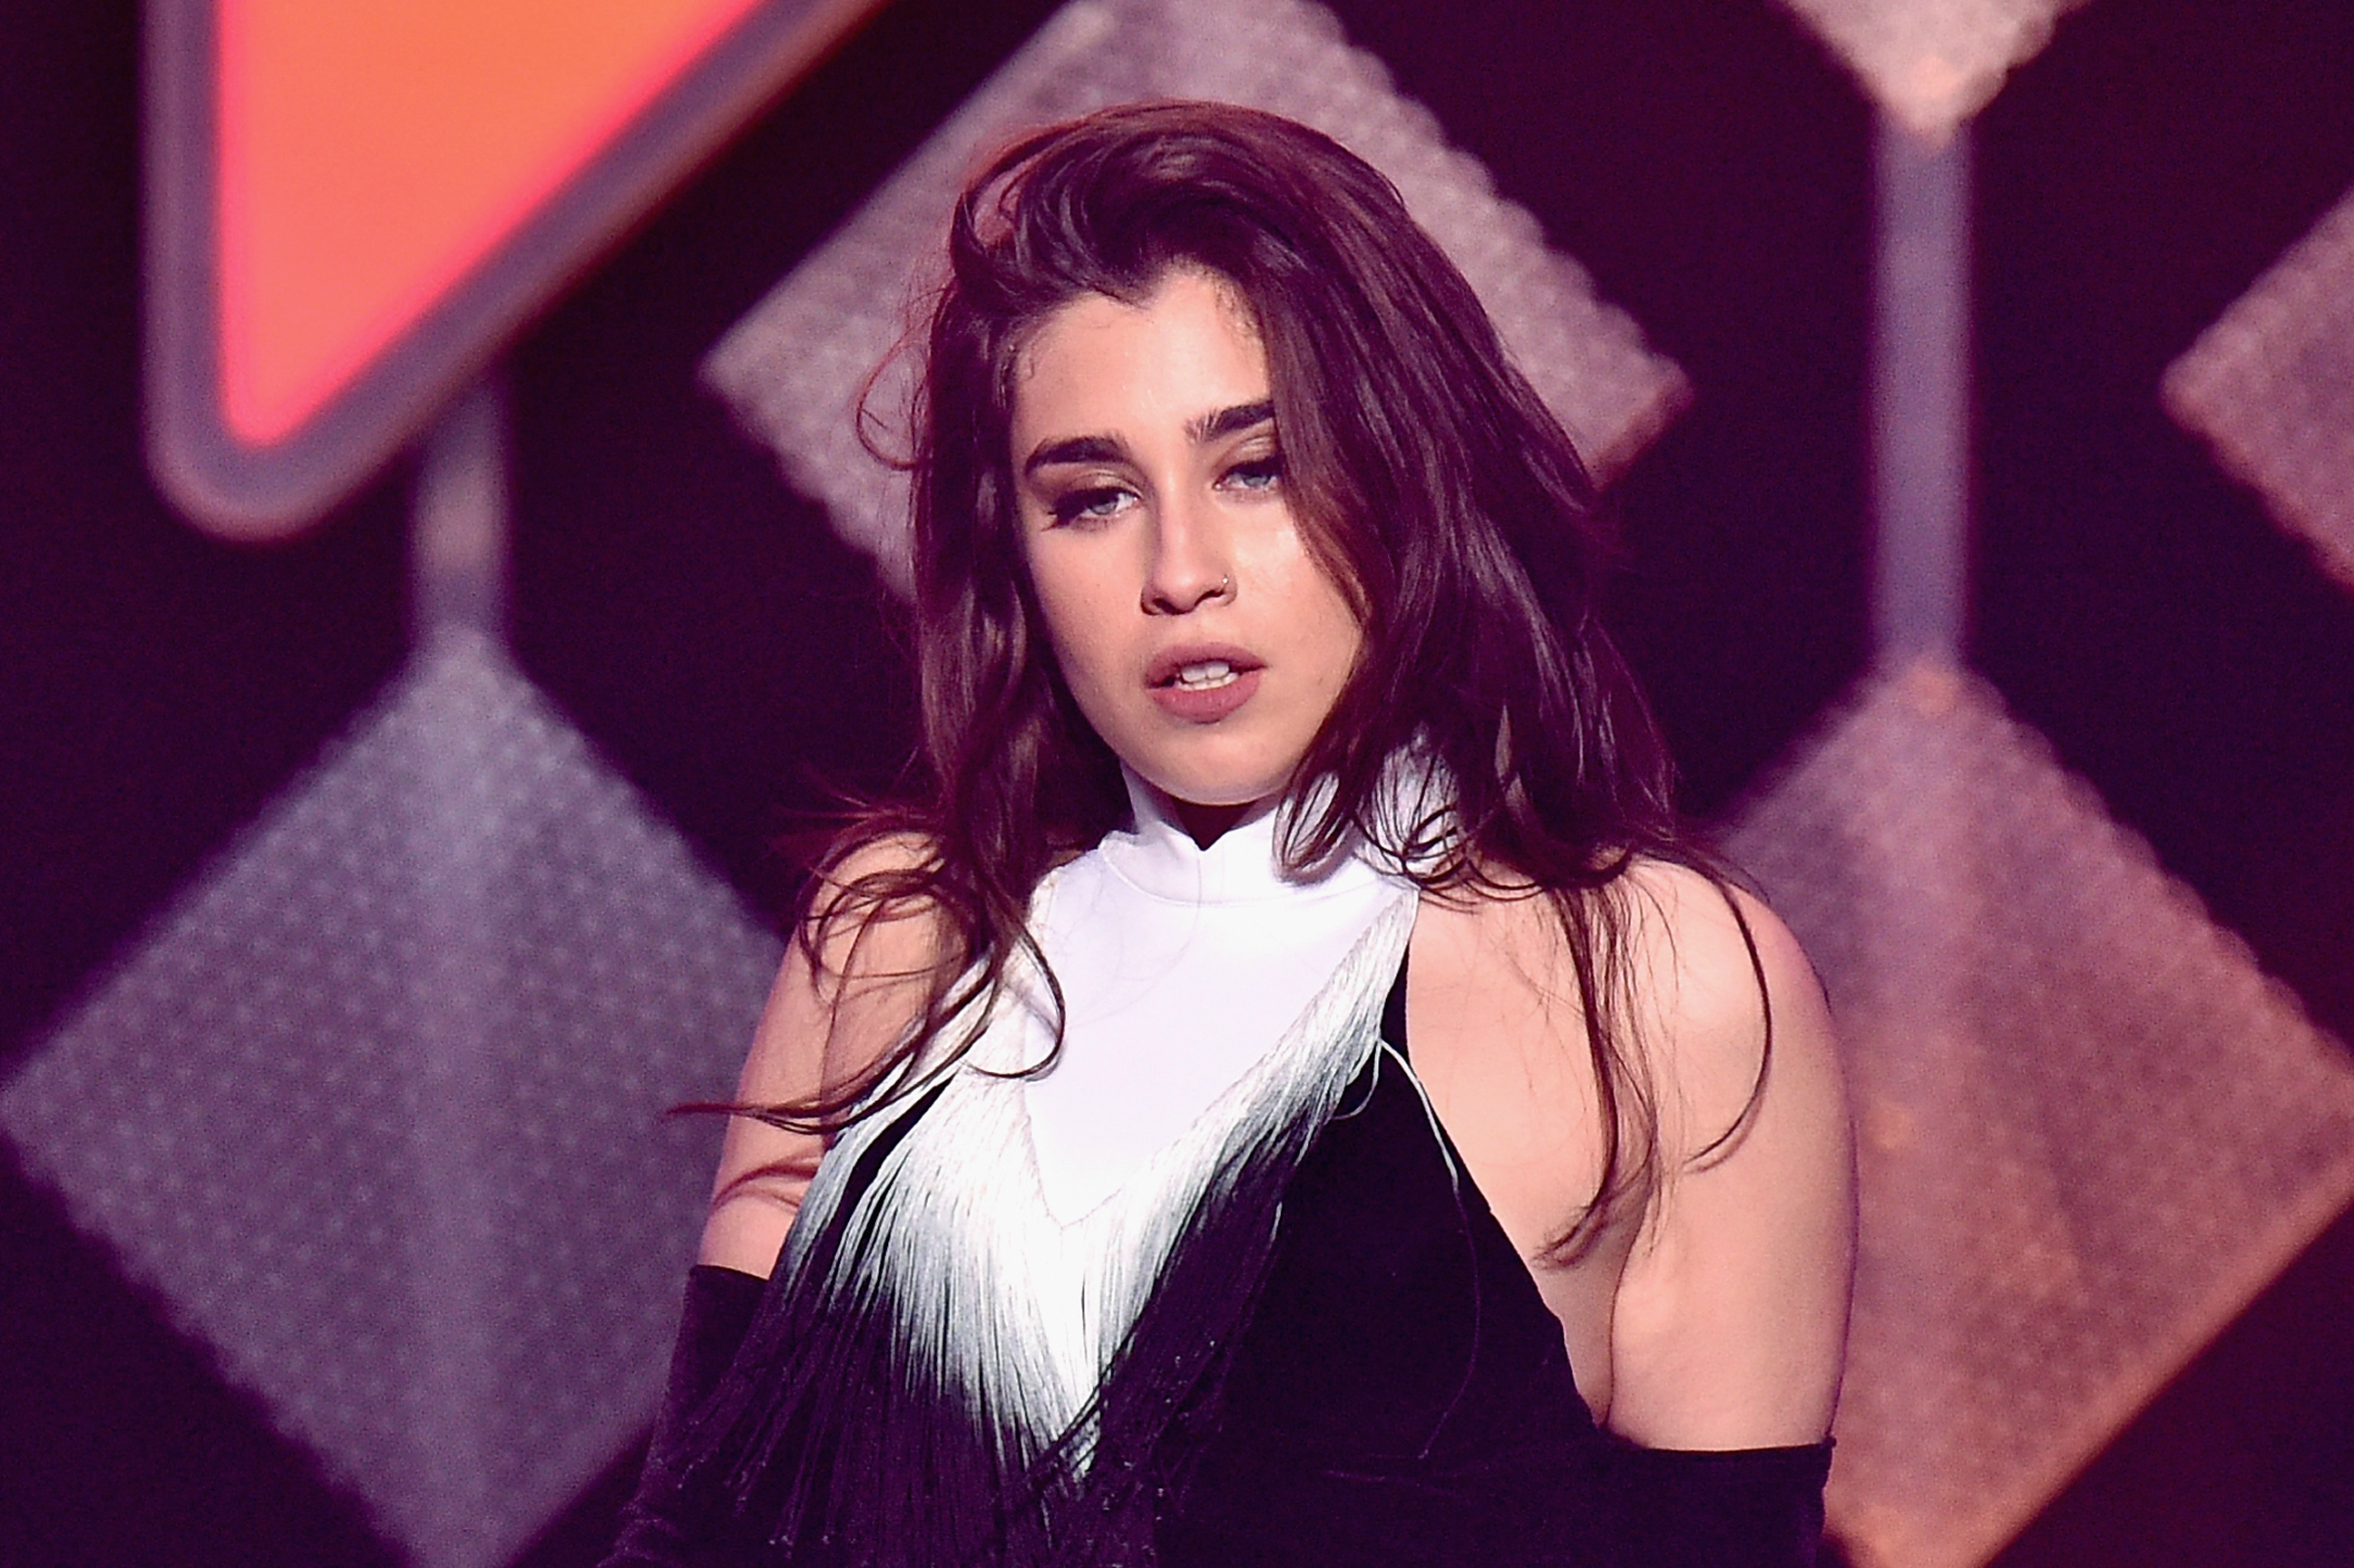 image Lauren jauregui fifth harmony slut tribute dirty comments